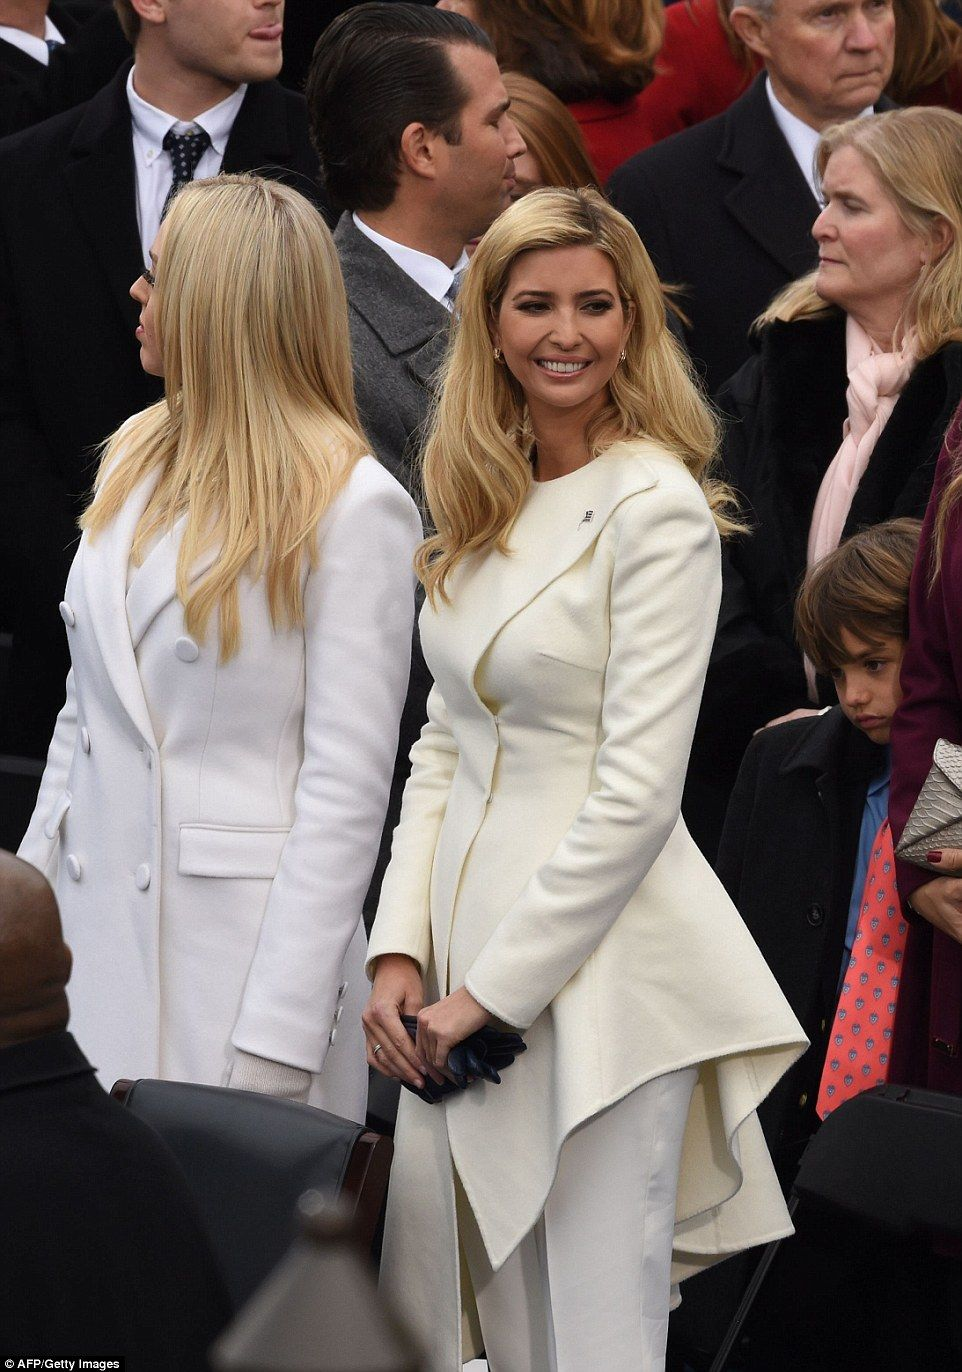 Ivanka Trump And Sister Tiffany Wear White To Inauguration Ivanka Trump Style Ivanka Trump White Pantsuit